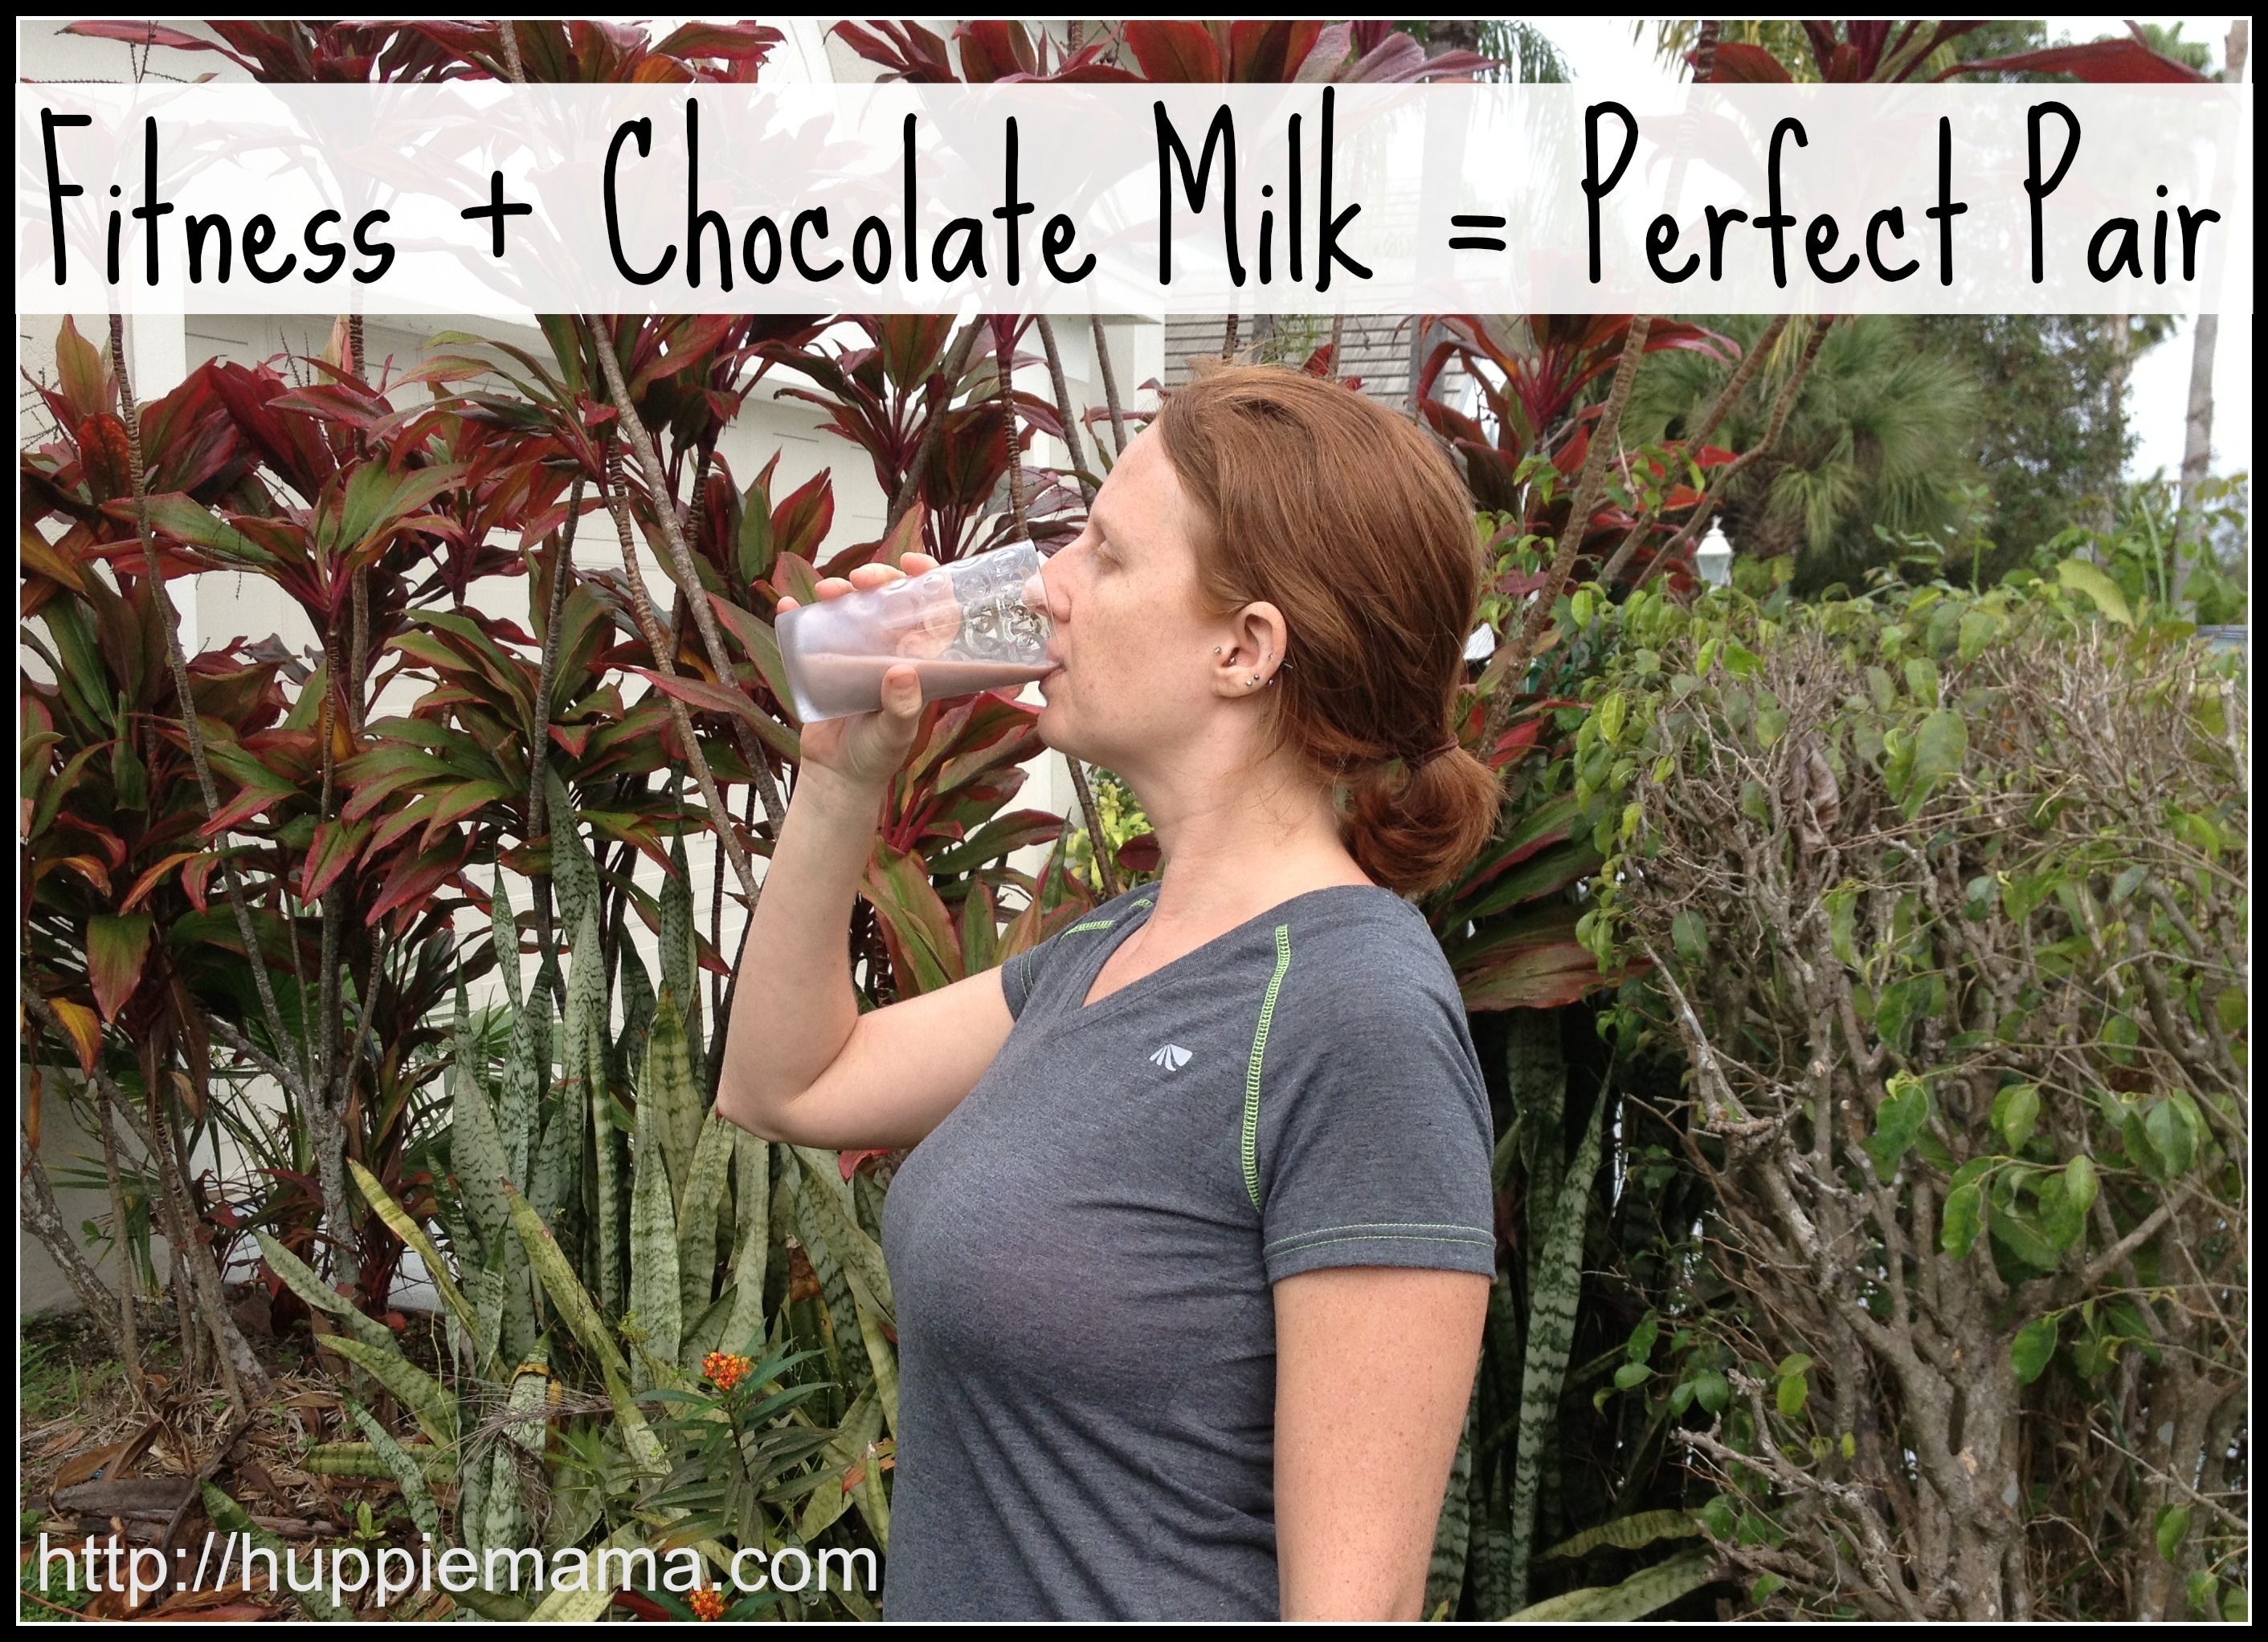 Fitness + Chocolate Milk = A Perfect Pair